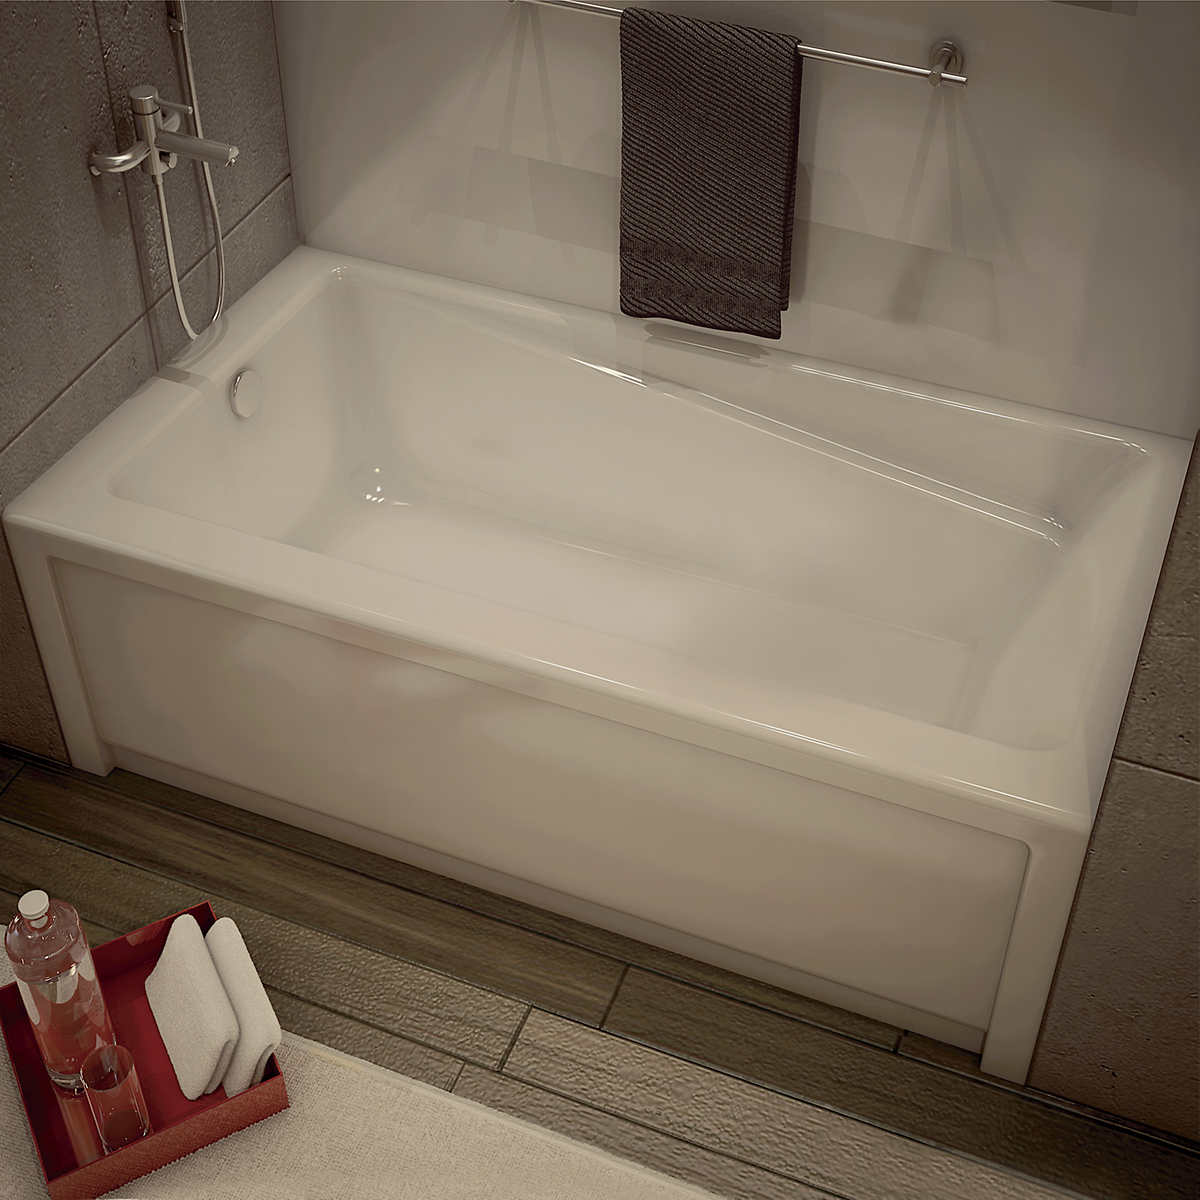 Amazing Tub Paint Thin How To Paint A Tub Solid Painting A Tub Can I Paint My Bathtub Old Paint A Tub Soft Painting Bathtubs